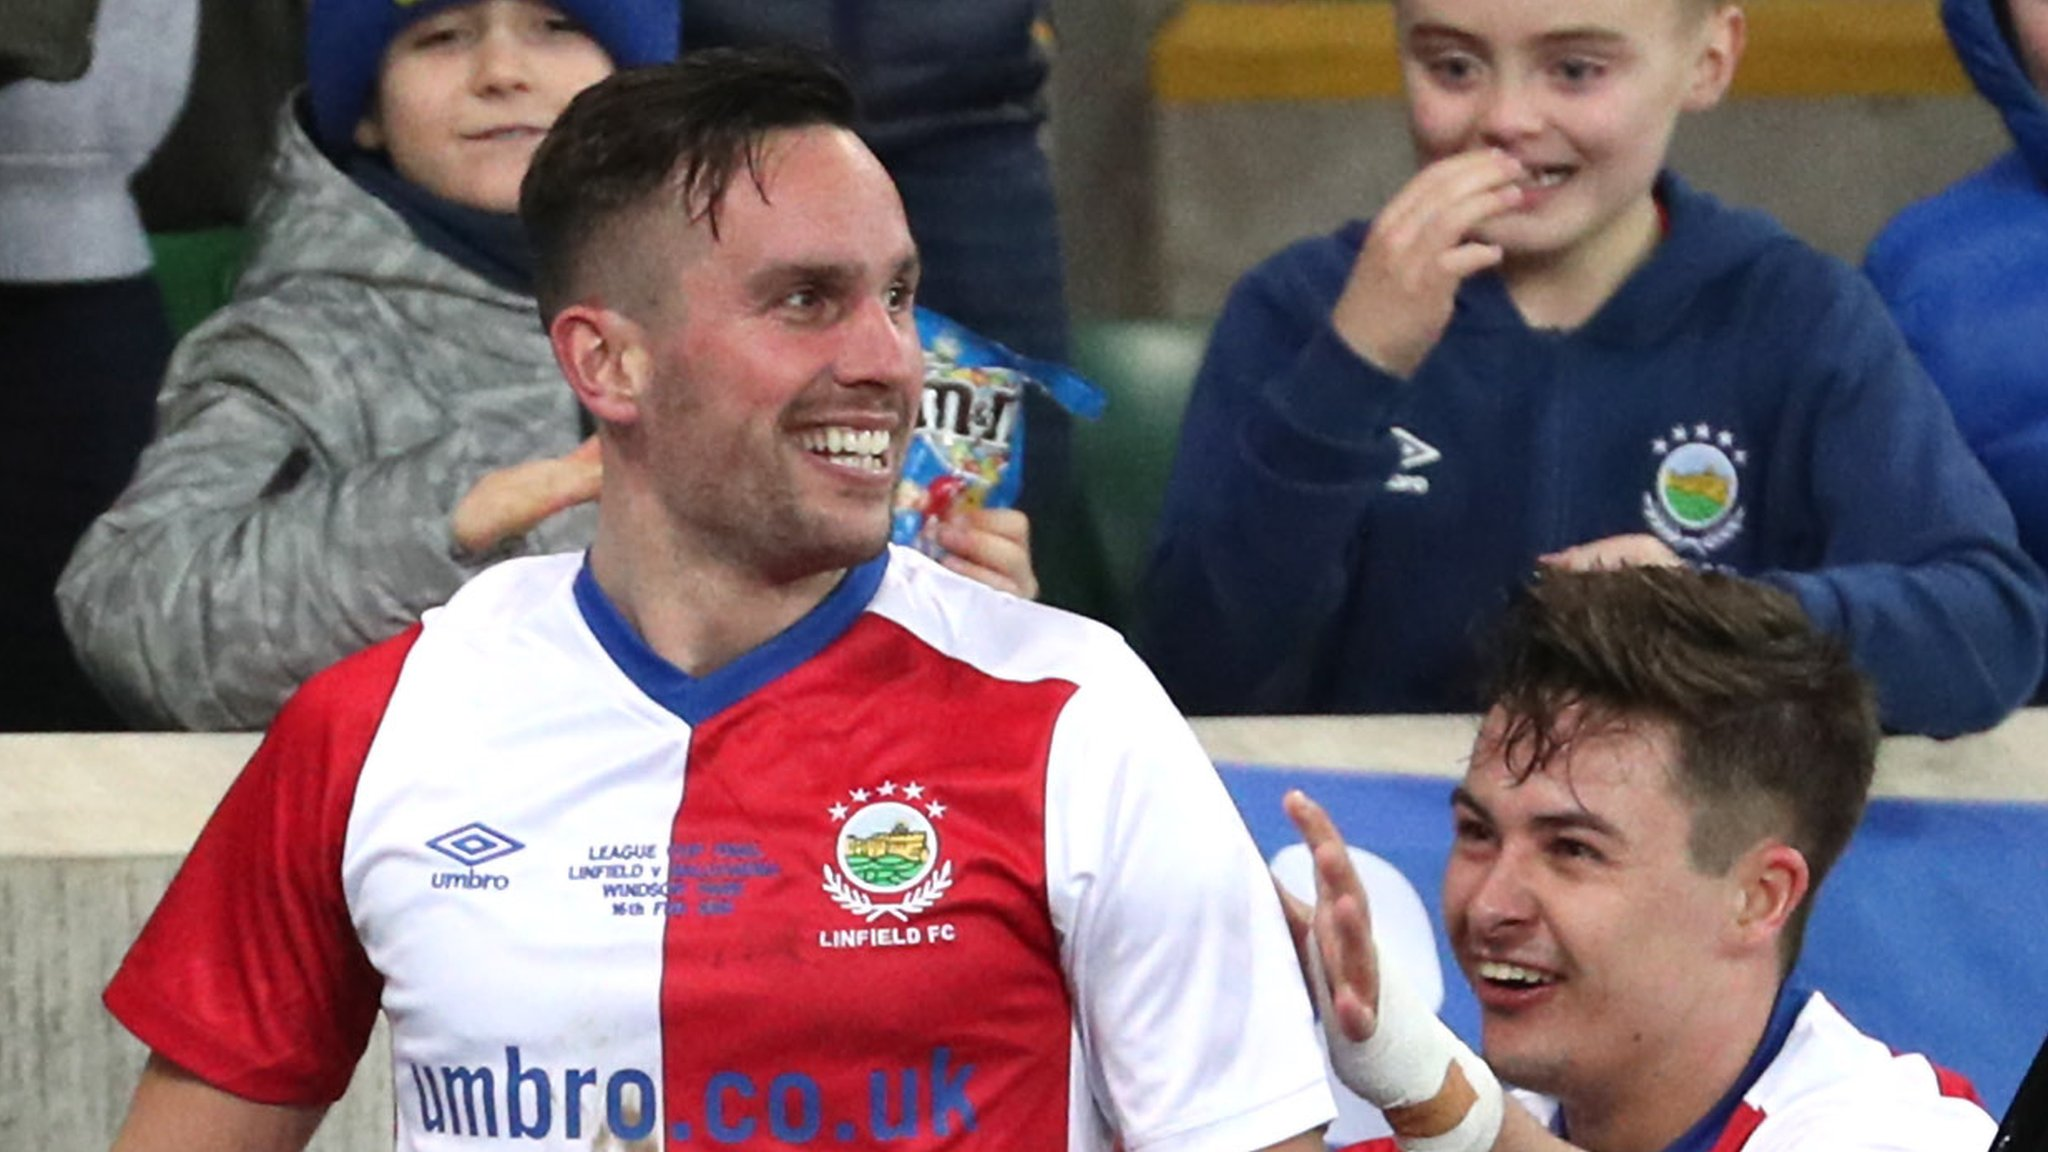 League Cup: Linfield edge Ballymena to win decider